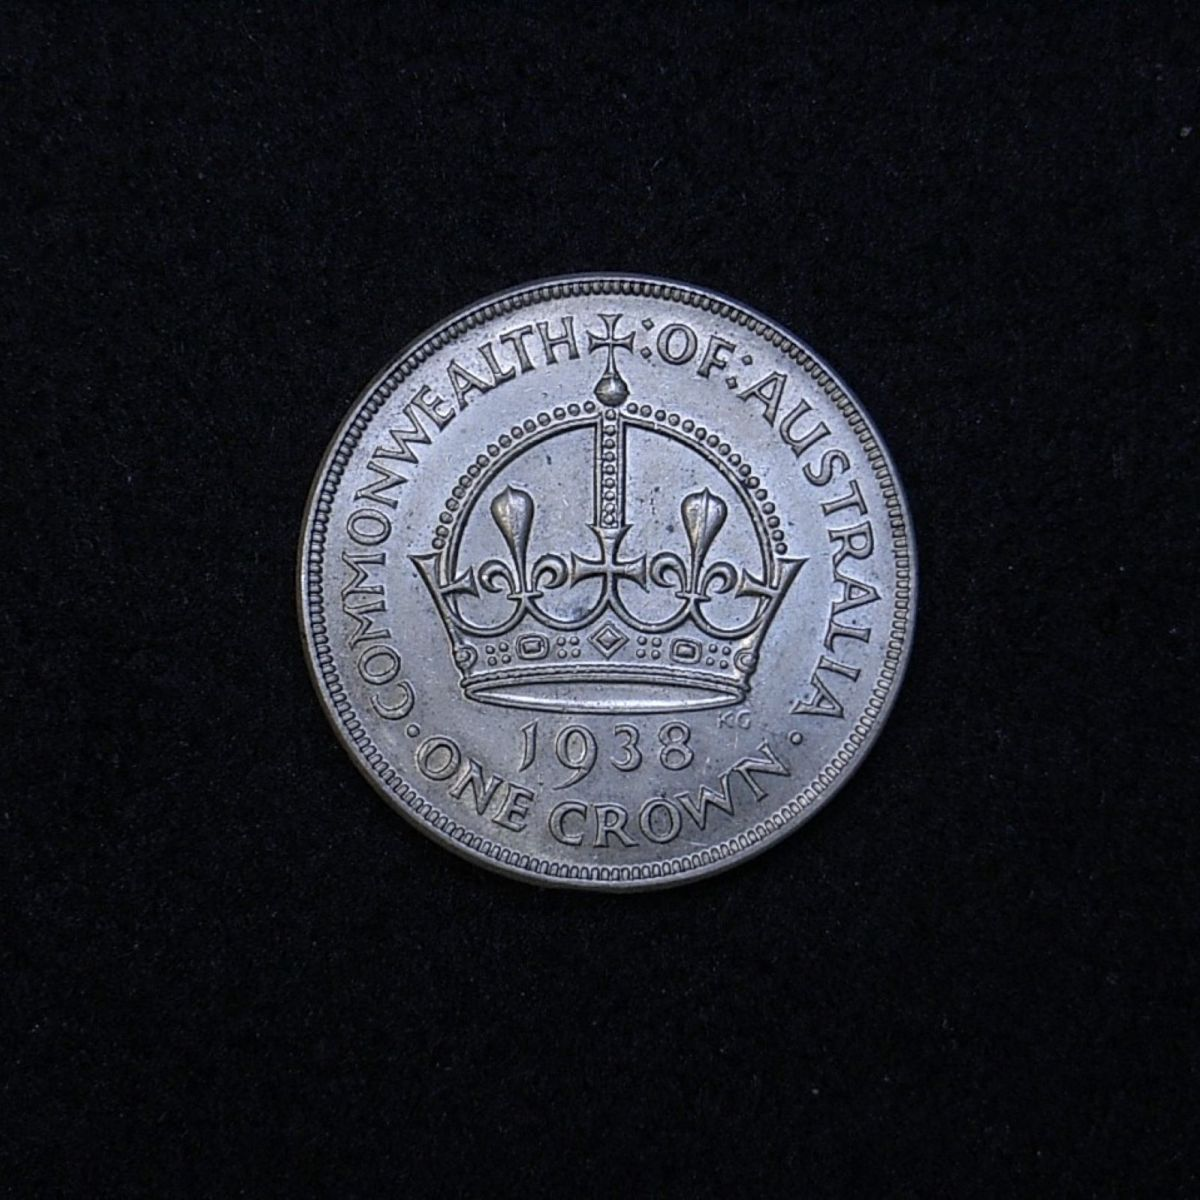 Aus Crown 1938 reverse showing overall appearance